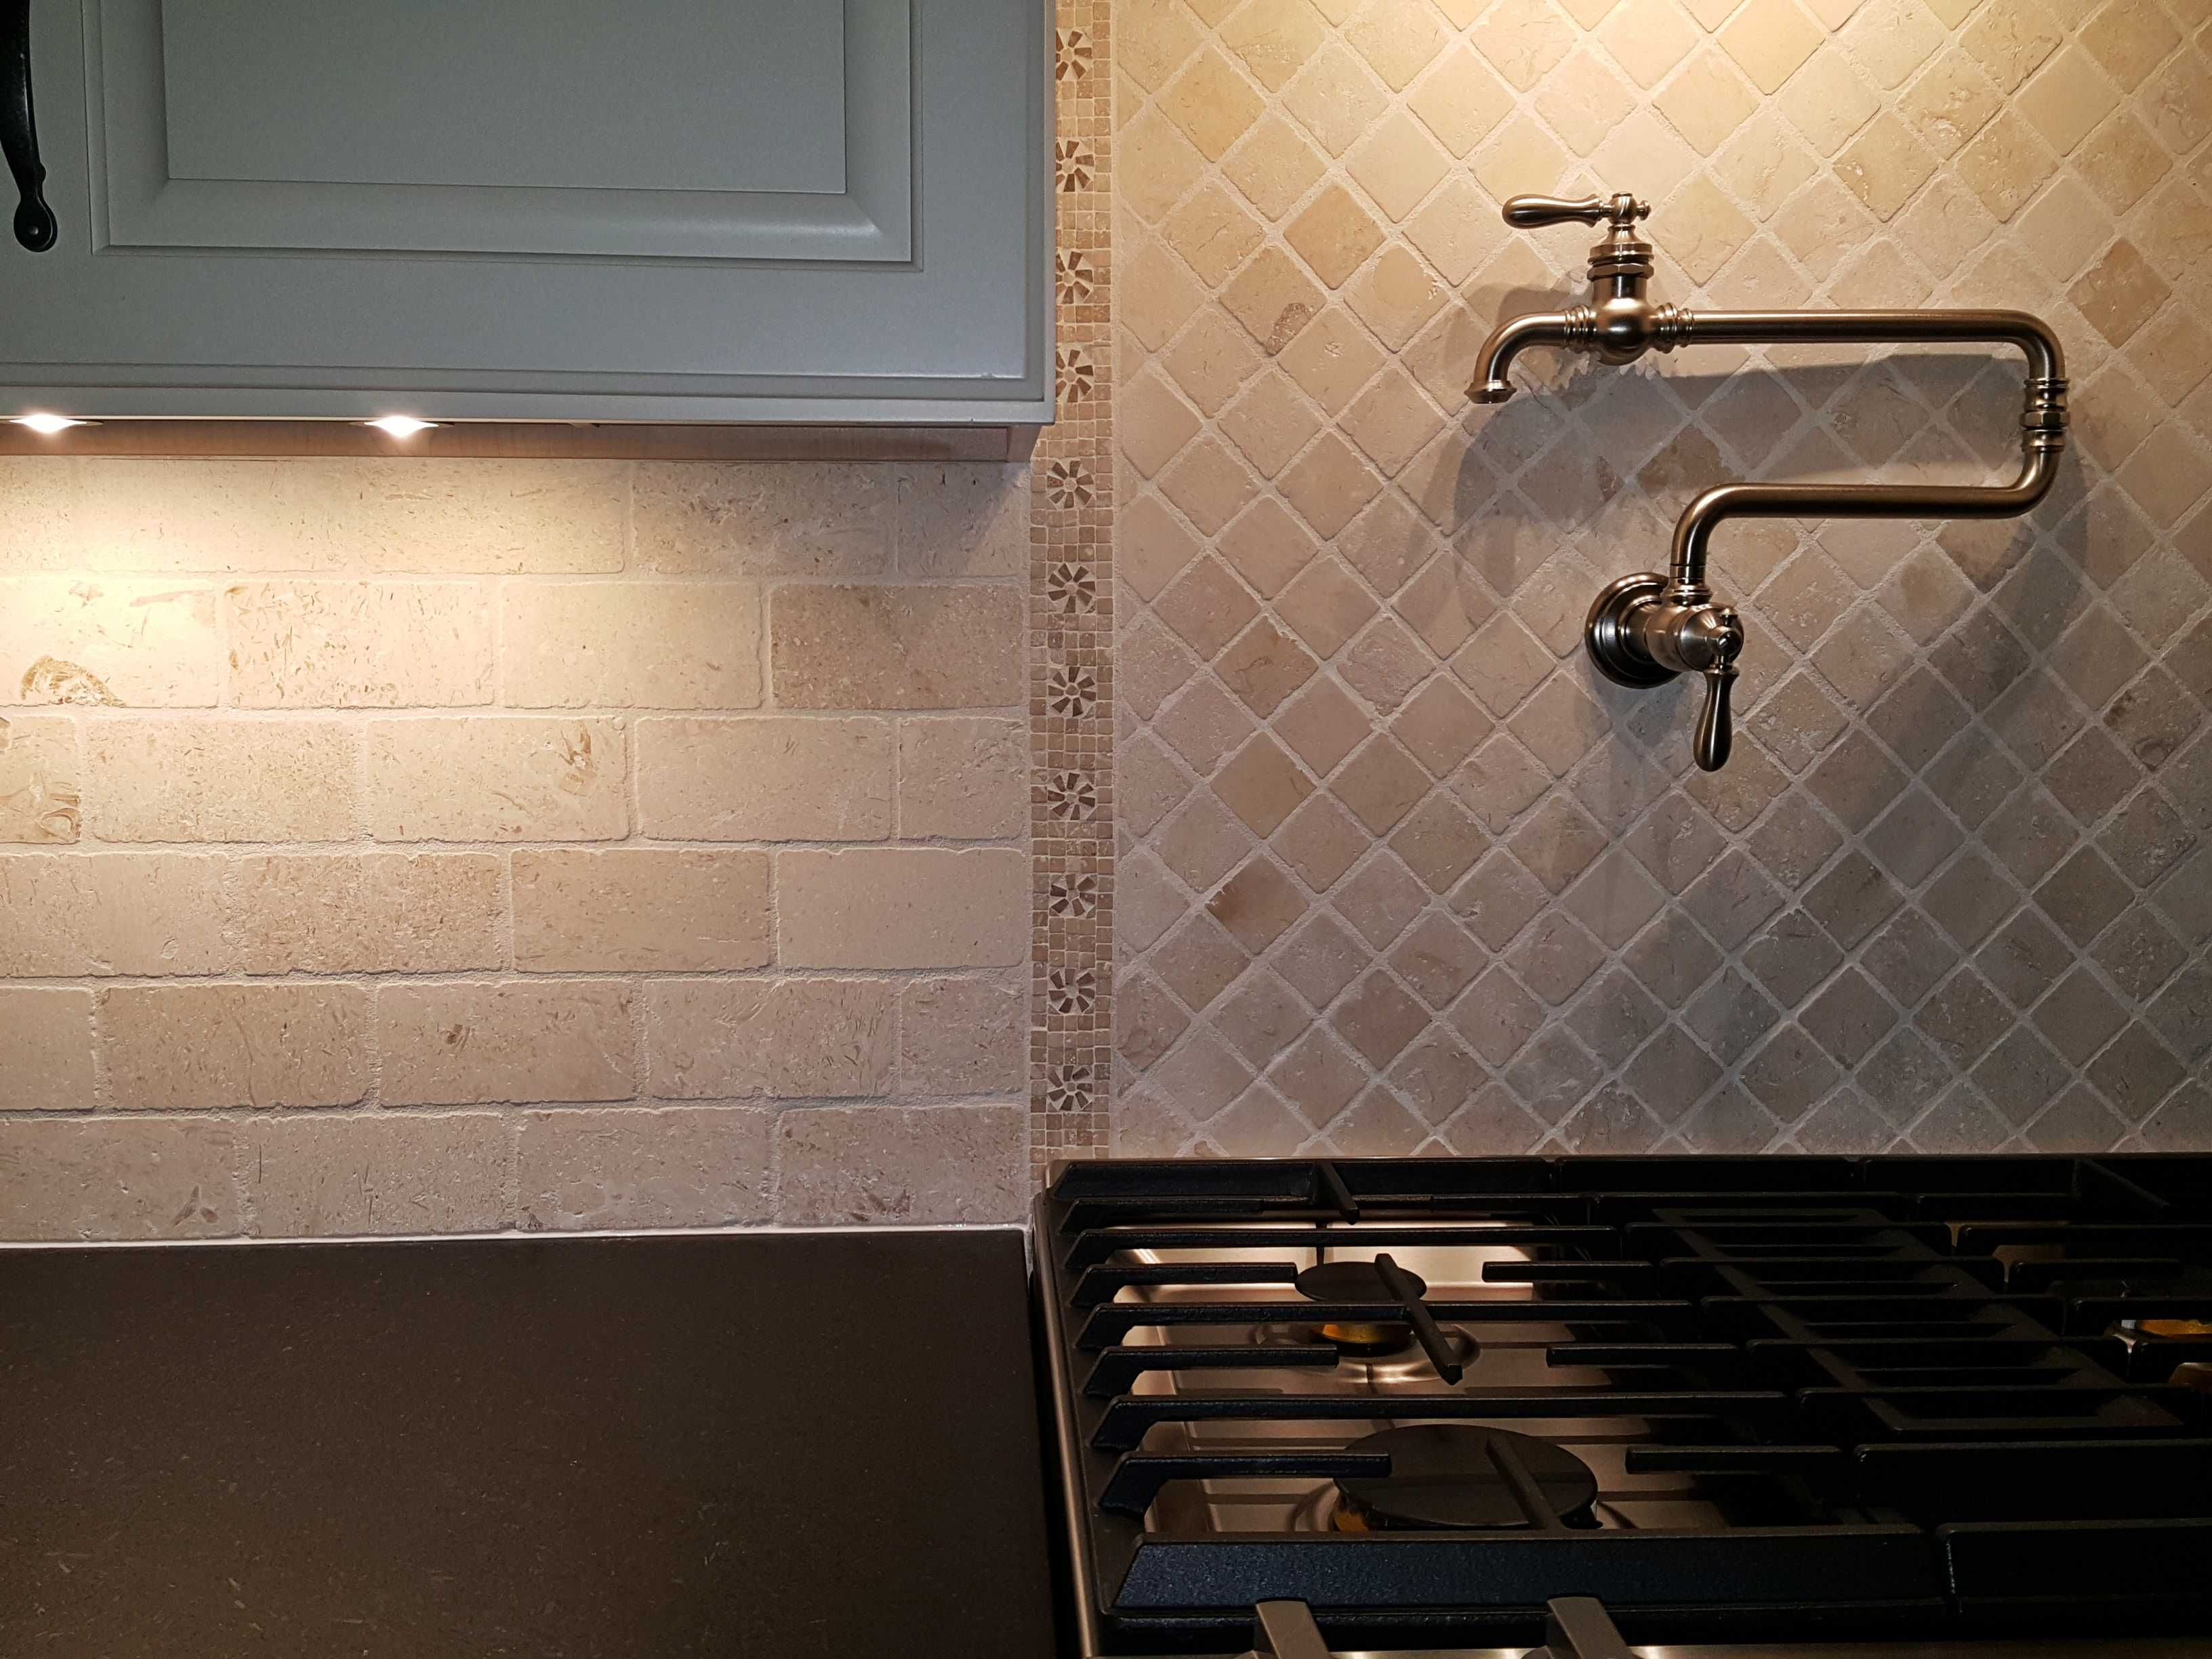 - Loved The Look Of The Off White Brick Patterned Backsplash And